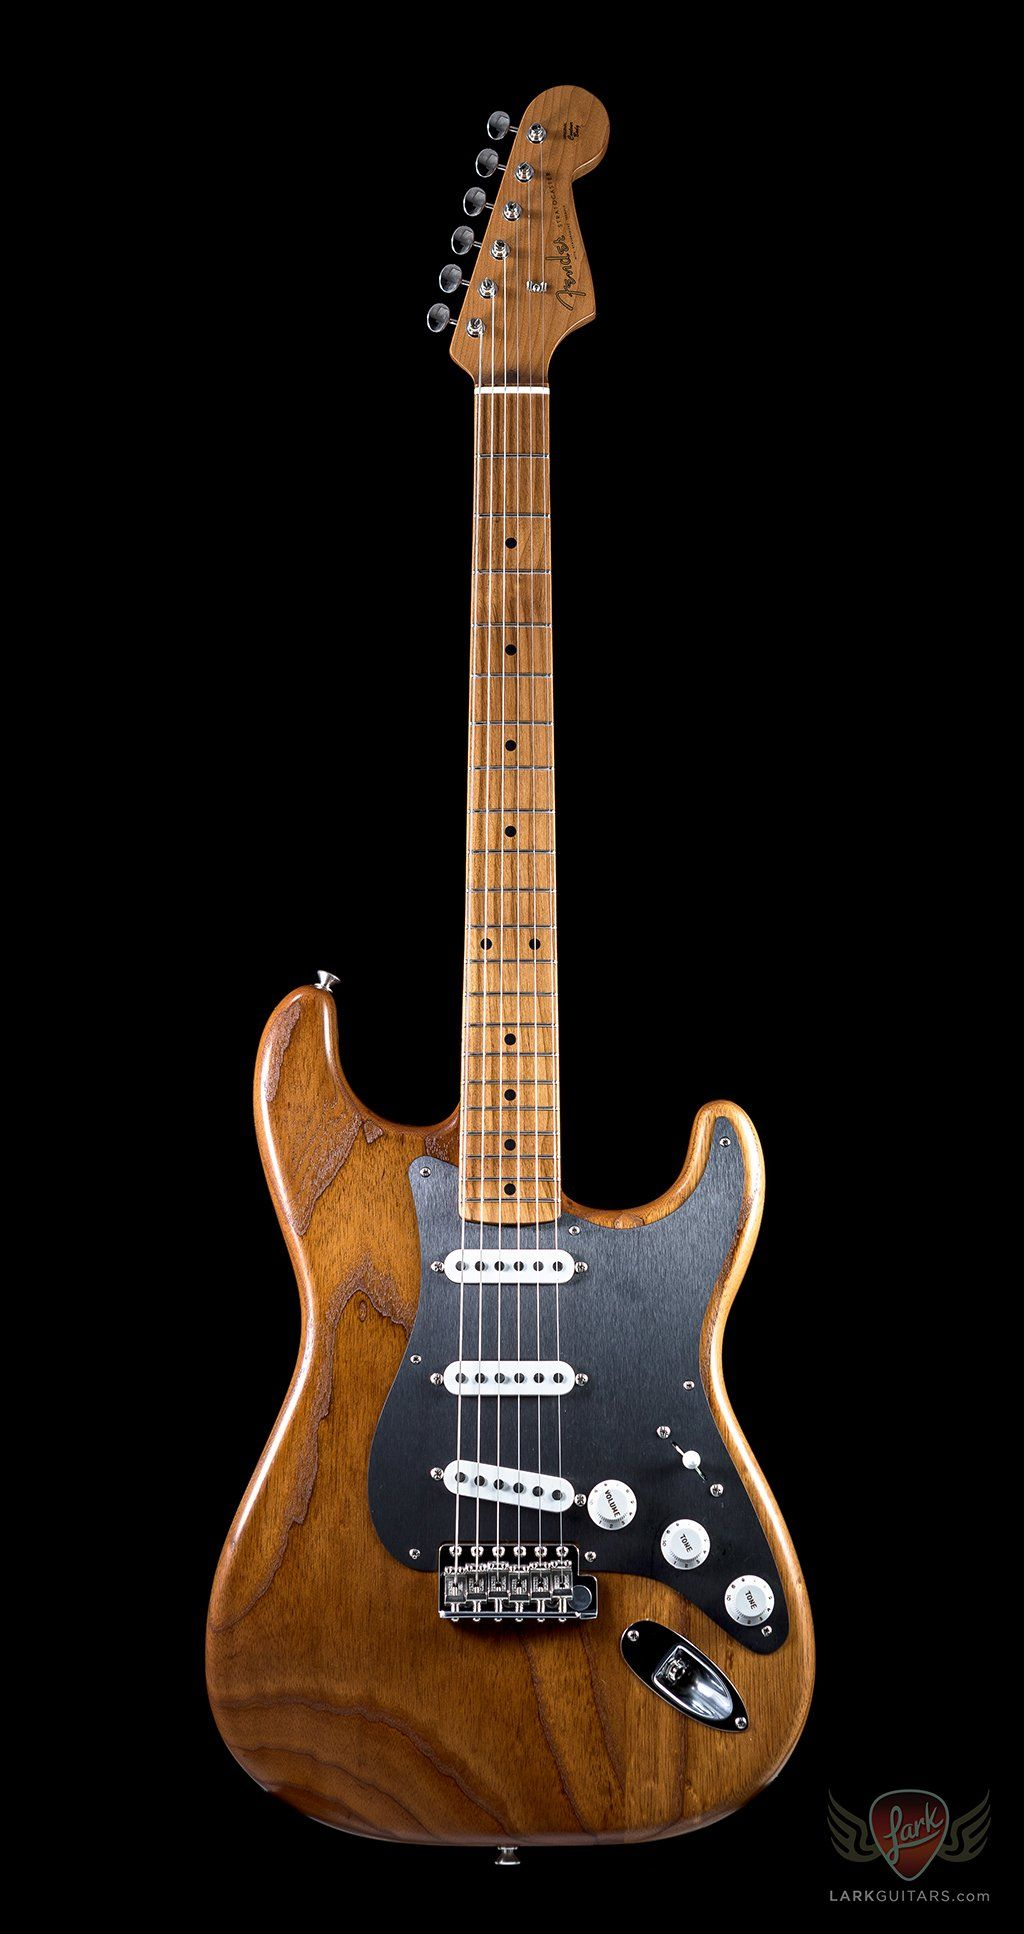 Fender Limited Edition American Vintage '56 Stratocaster Roasted Ash MN - Natural (218) #fenderstratocaster